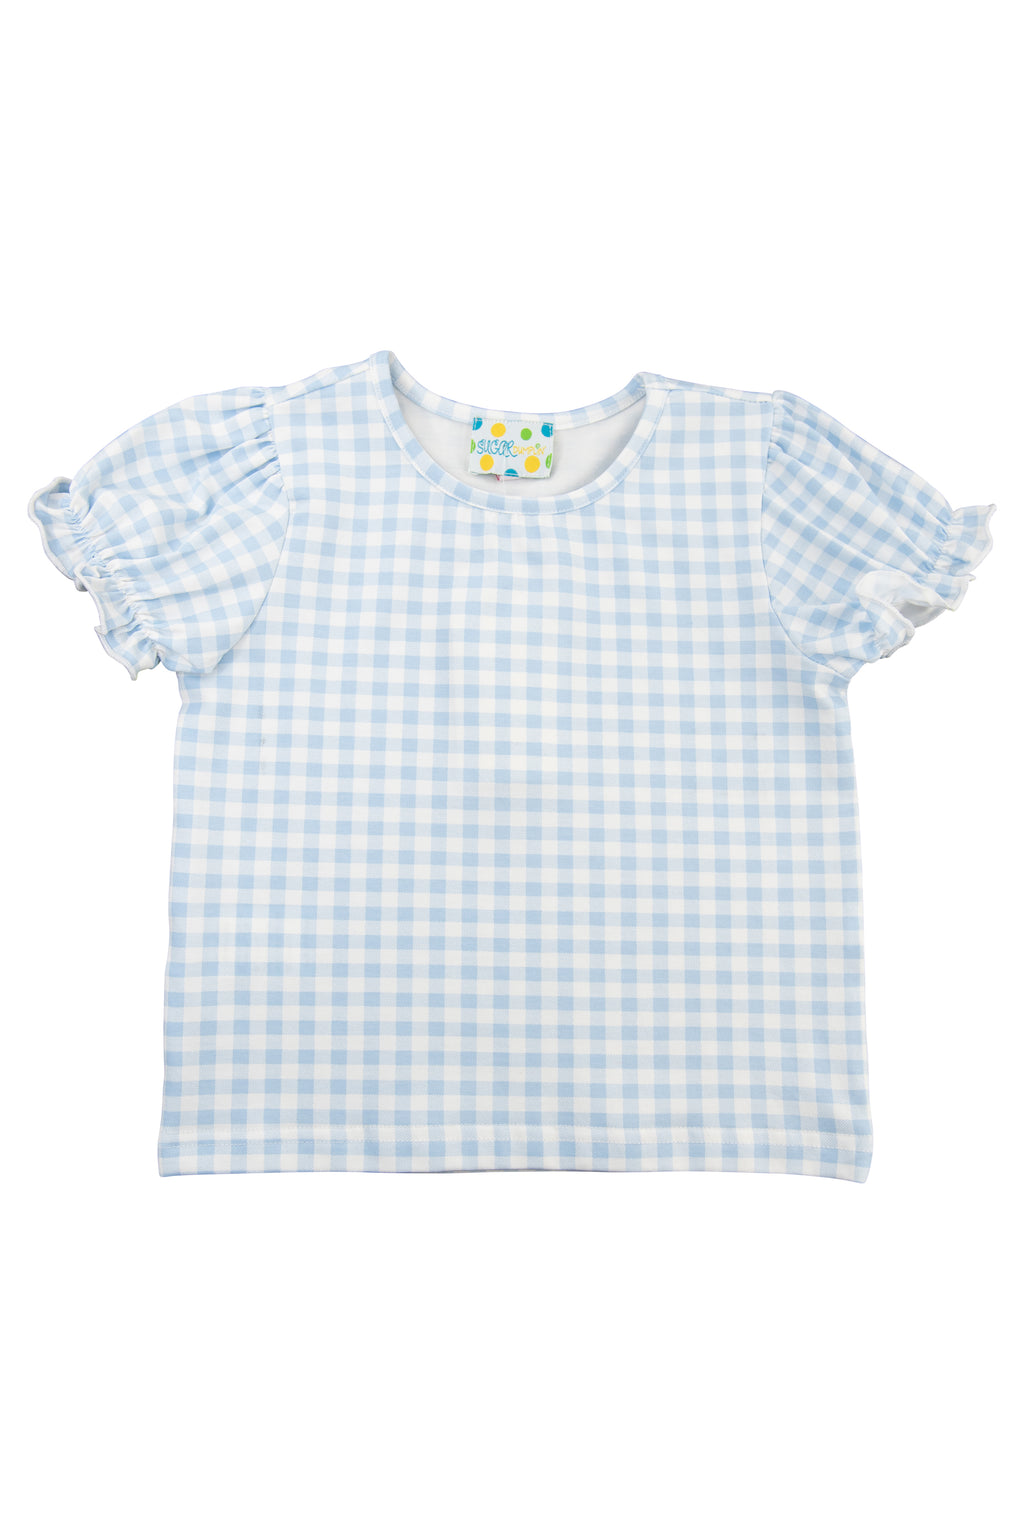 Girls Blue Gingham Shirt Only